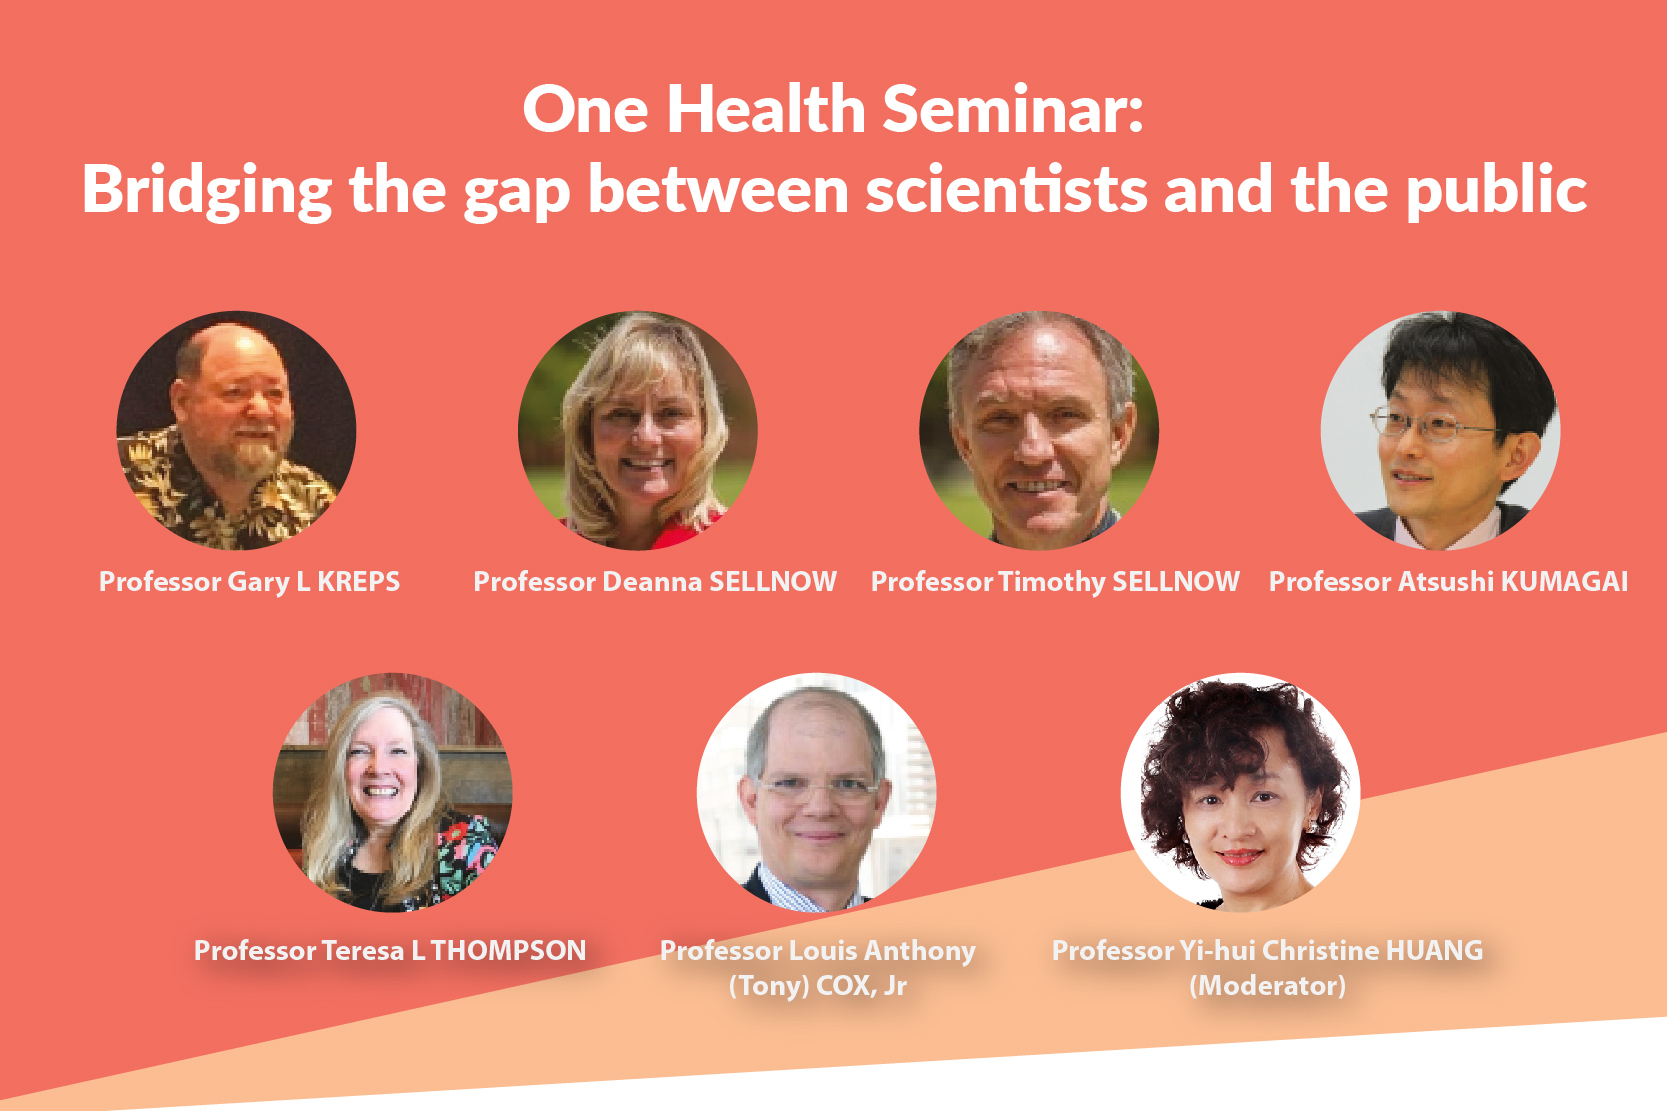 Online Seminar Gather Experts for Health Communication Discussion